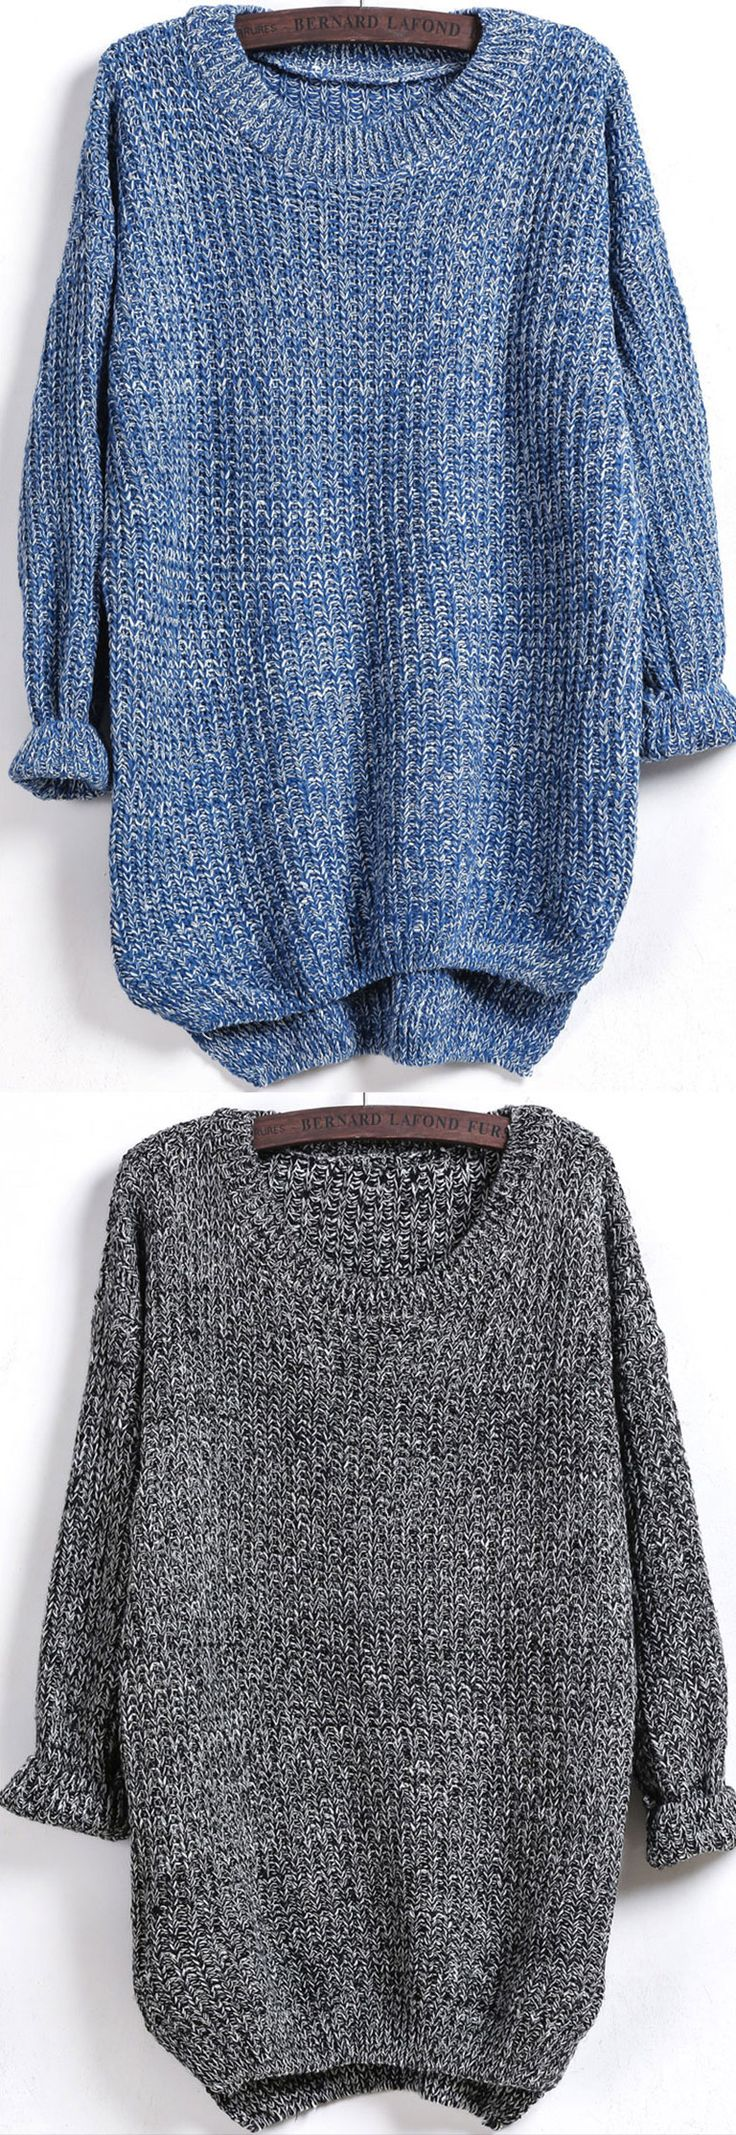 Dipped Hem Loose Knit Blue Sweater